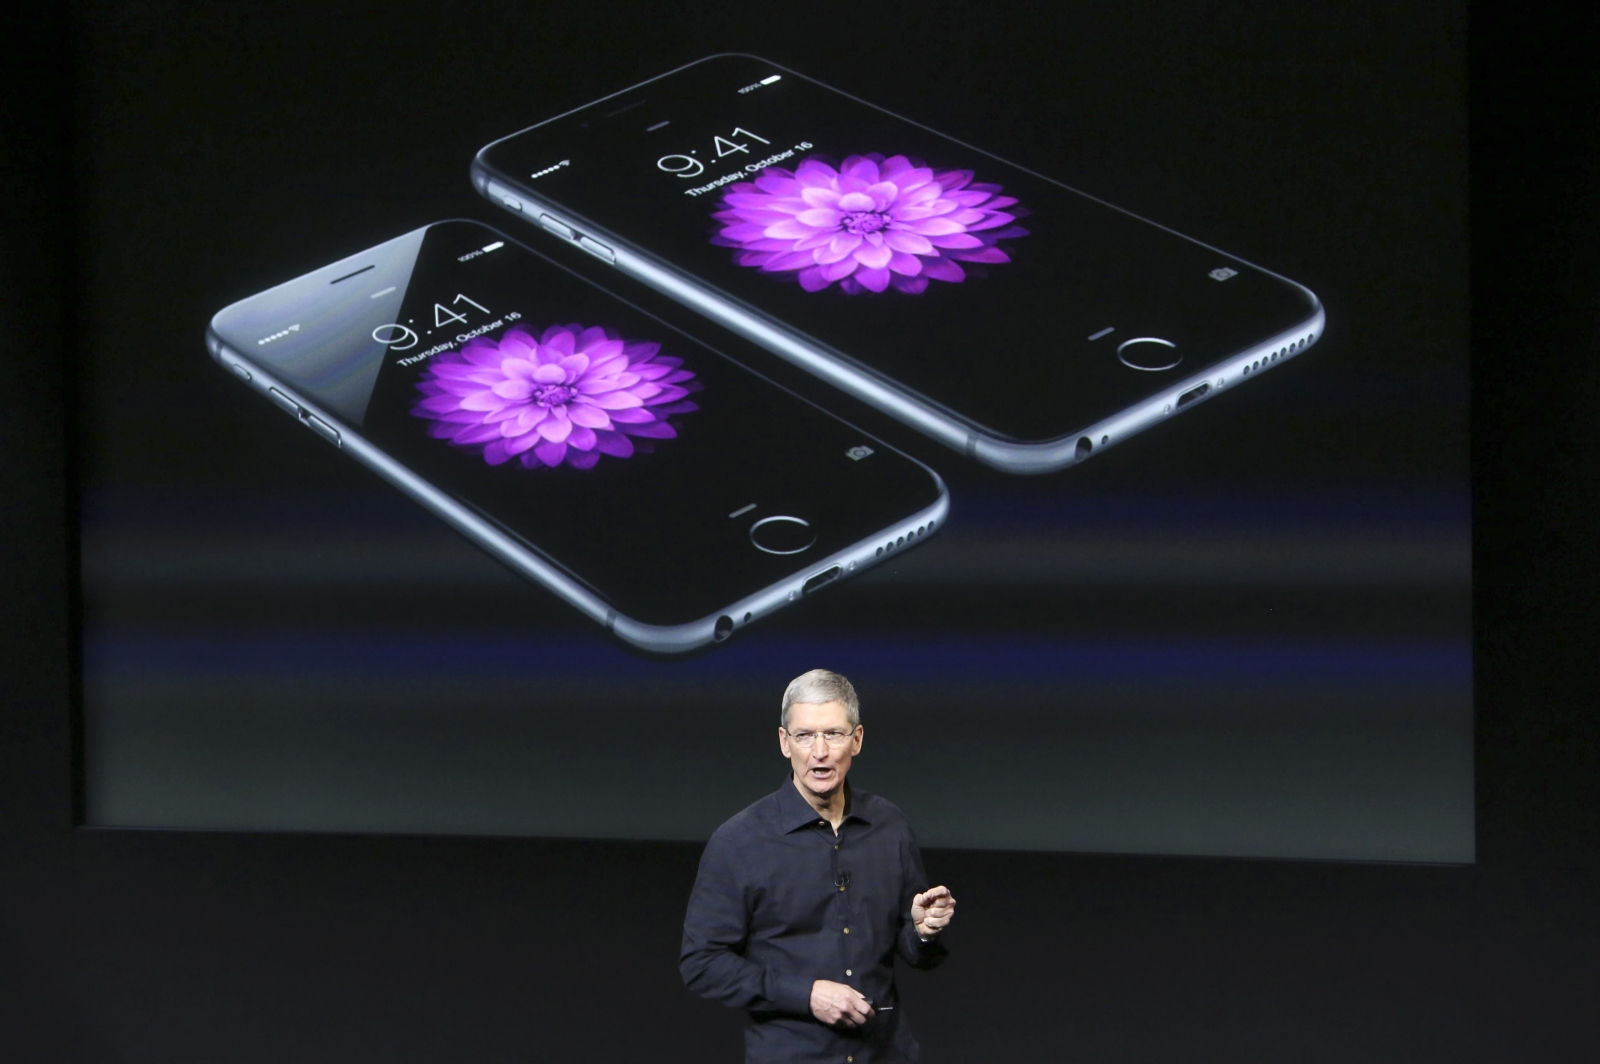 Apple CEO Tim Cook Unveils iPhone 6